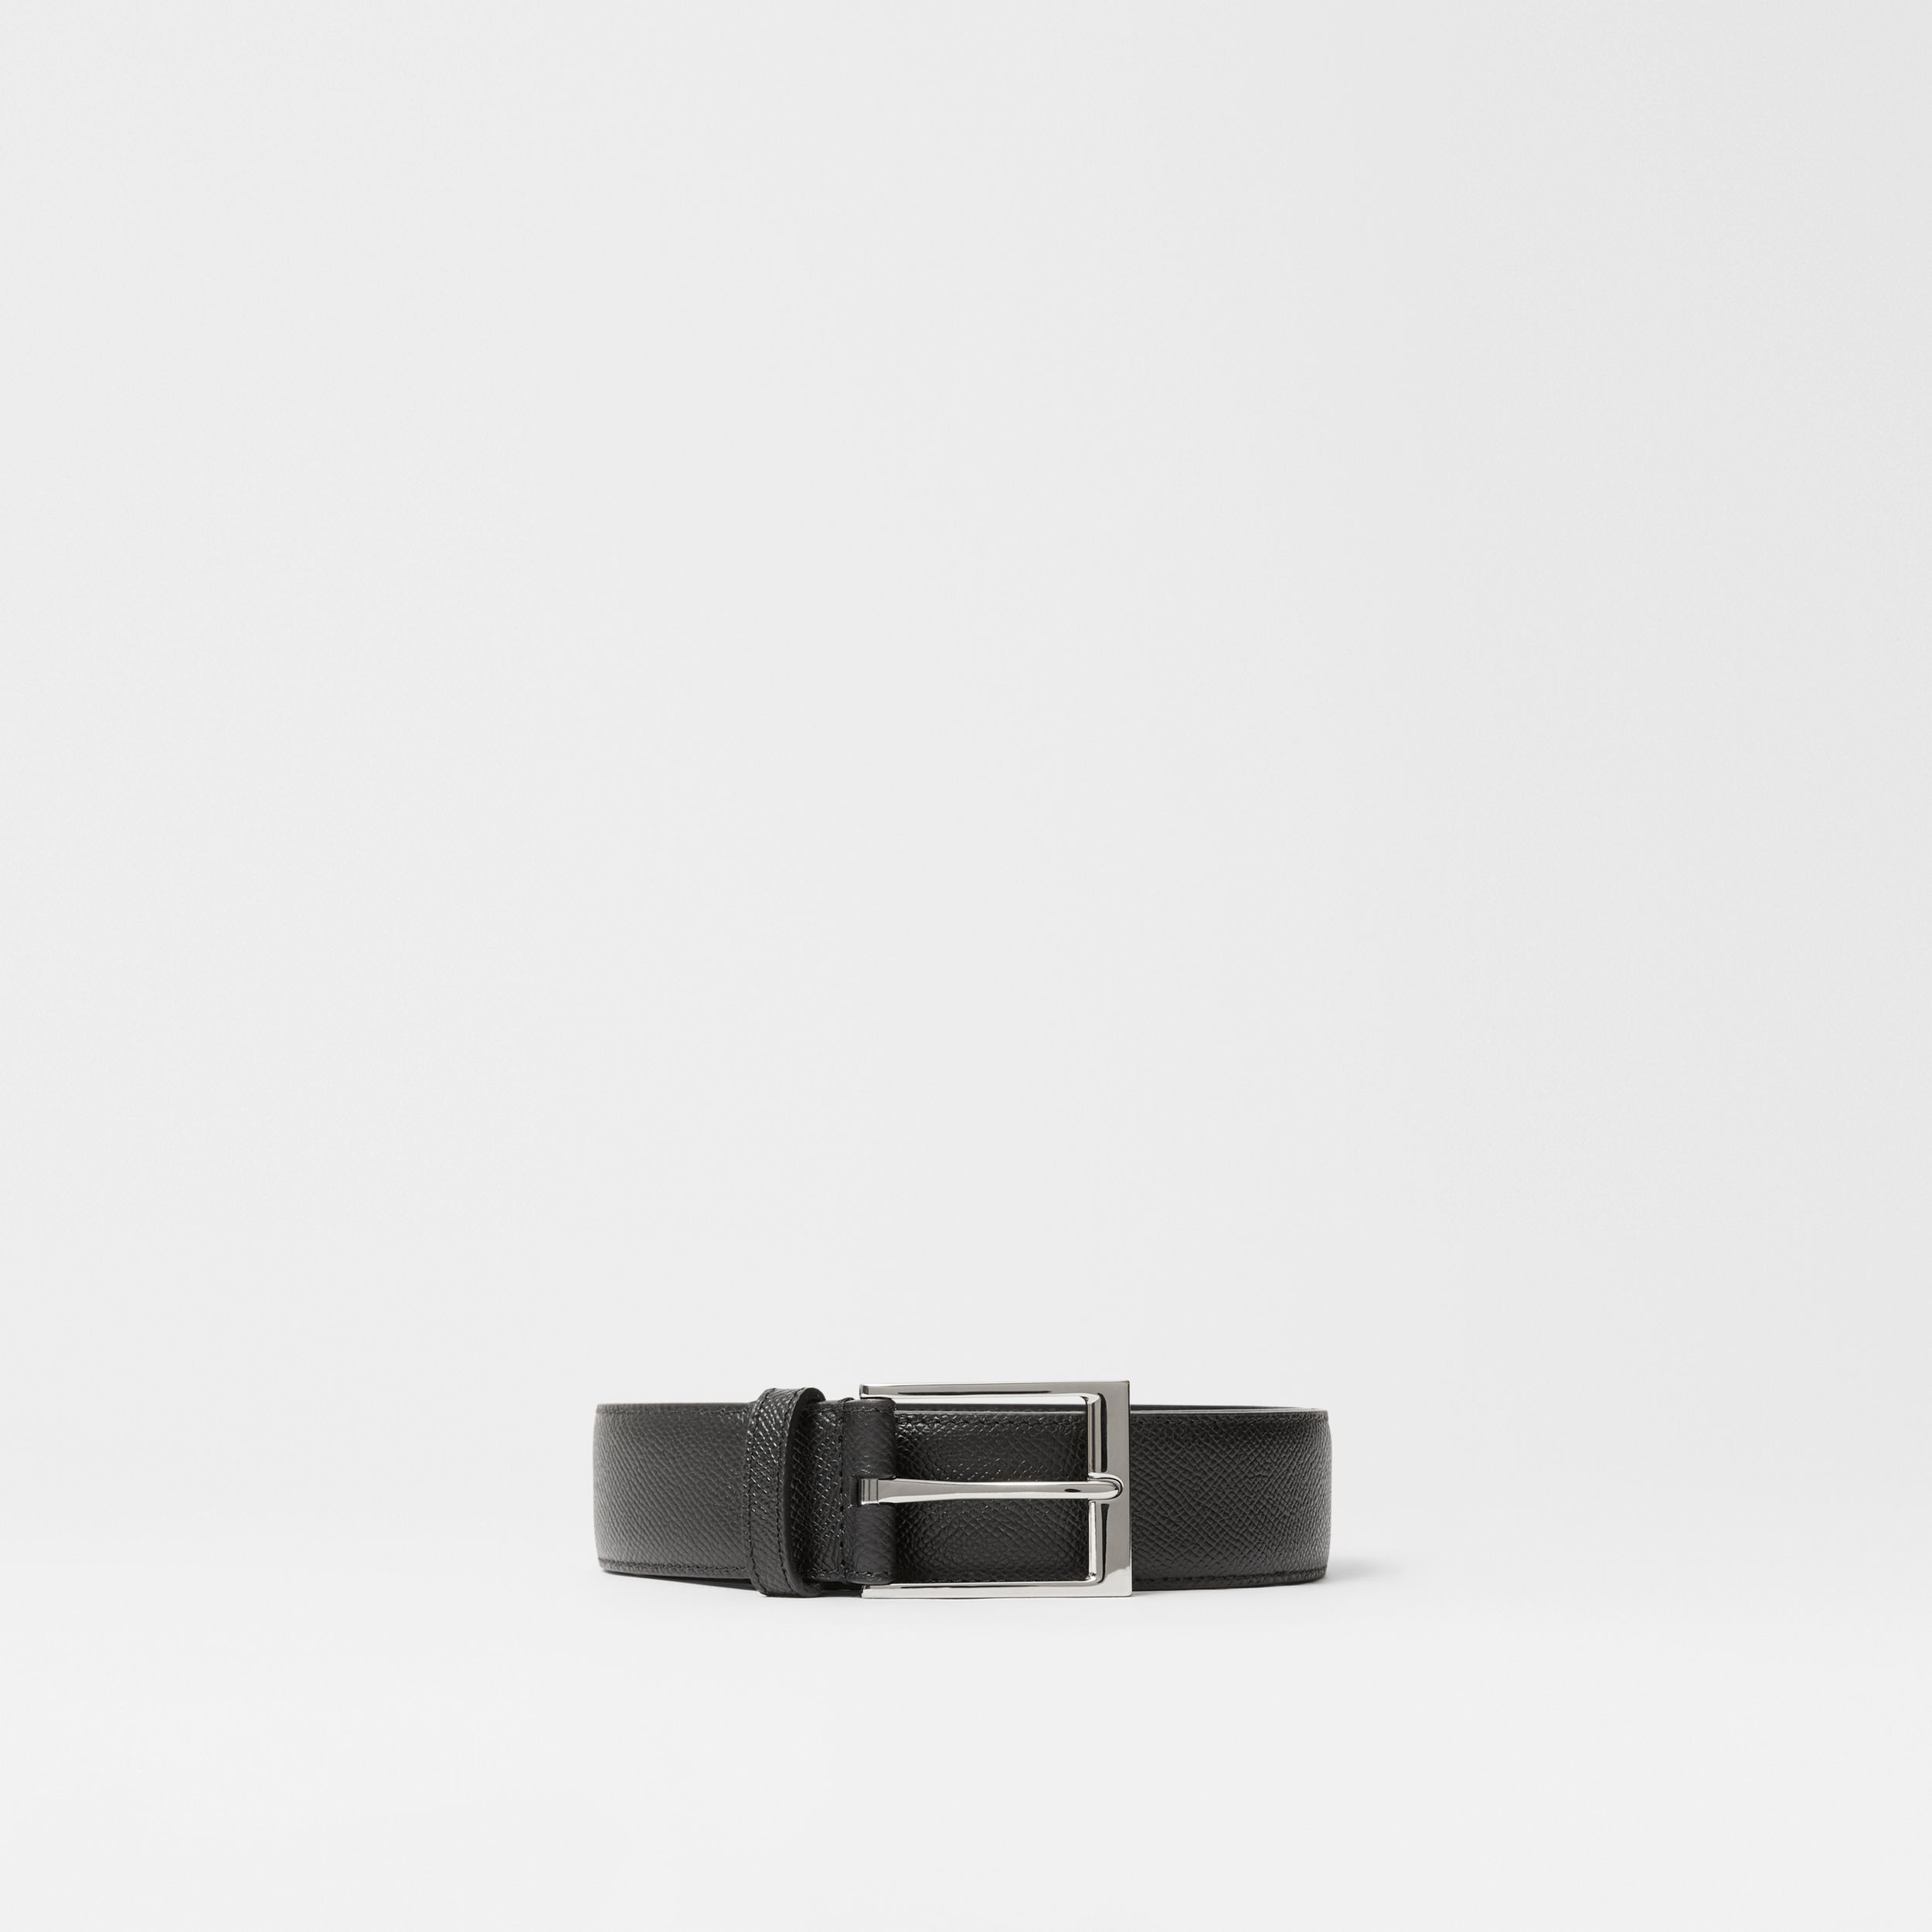 Icon Stripe Print Grainy Leather Belt in Black - Men | Burberry - 4